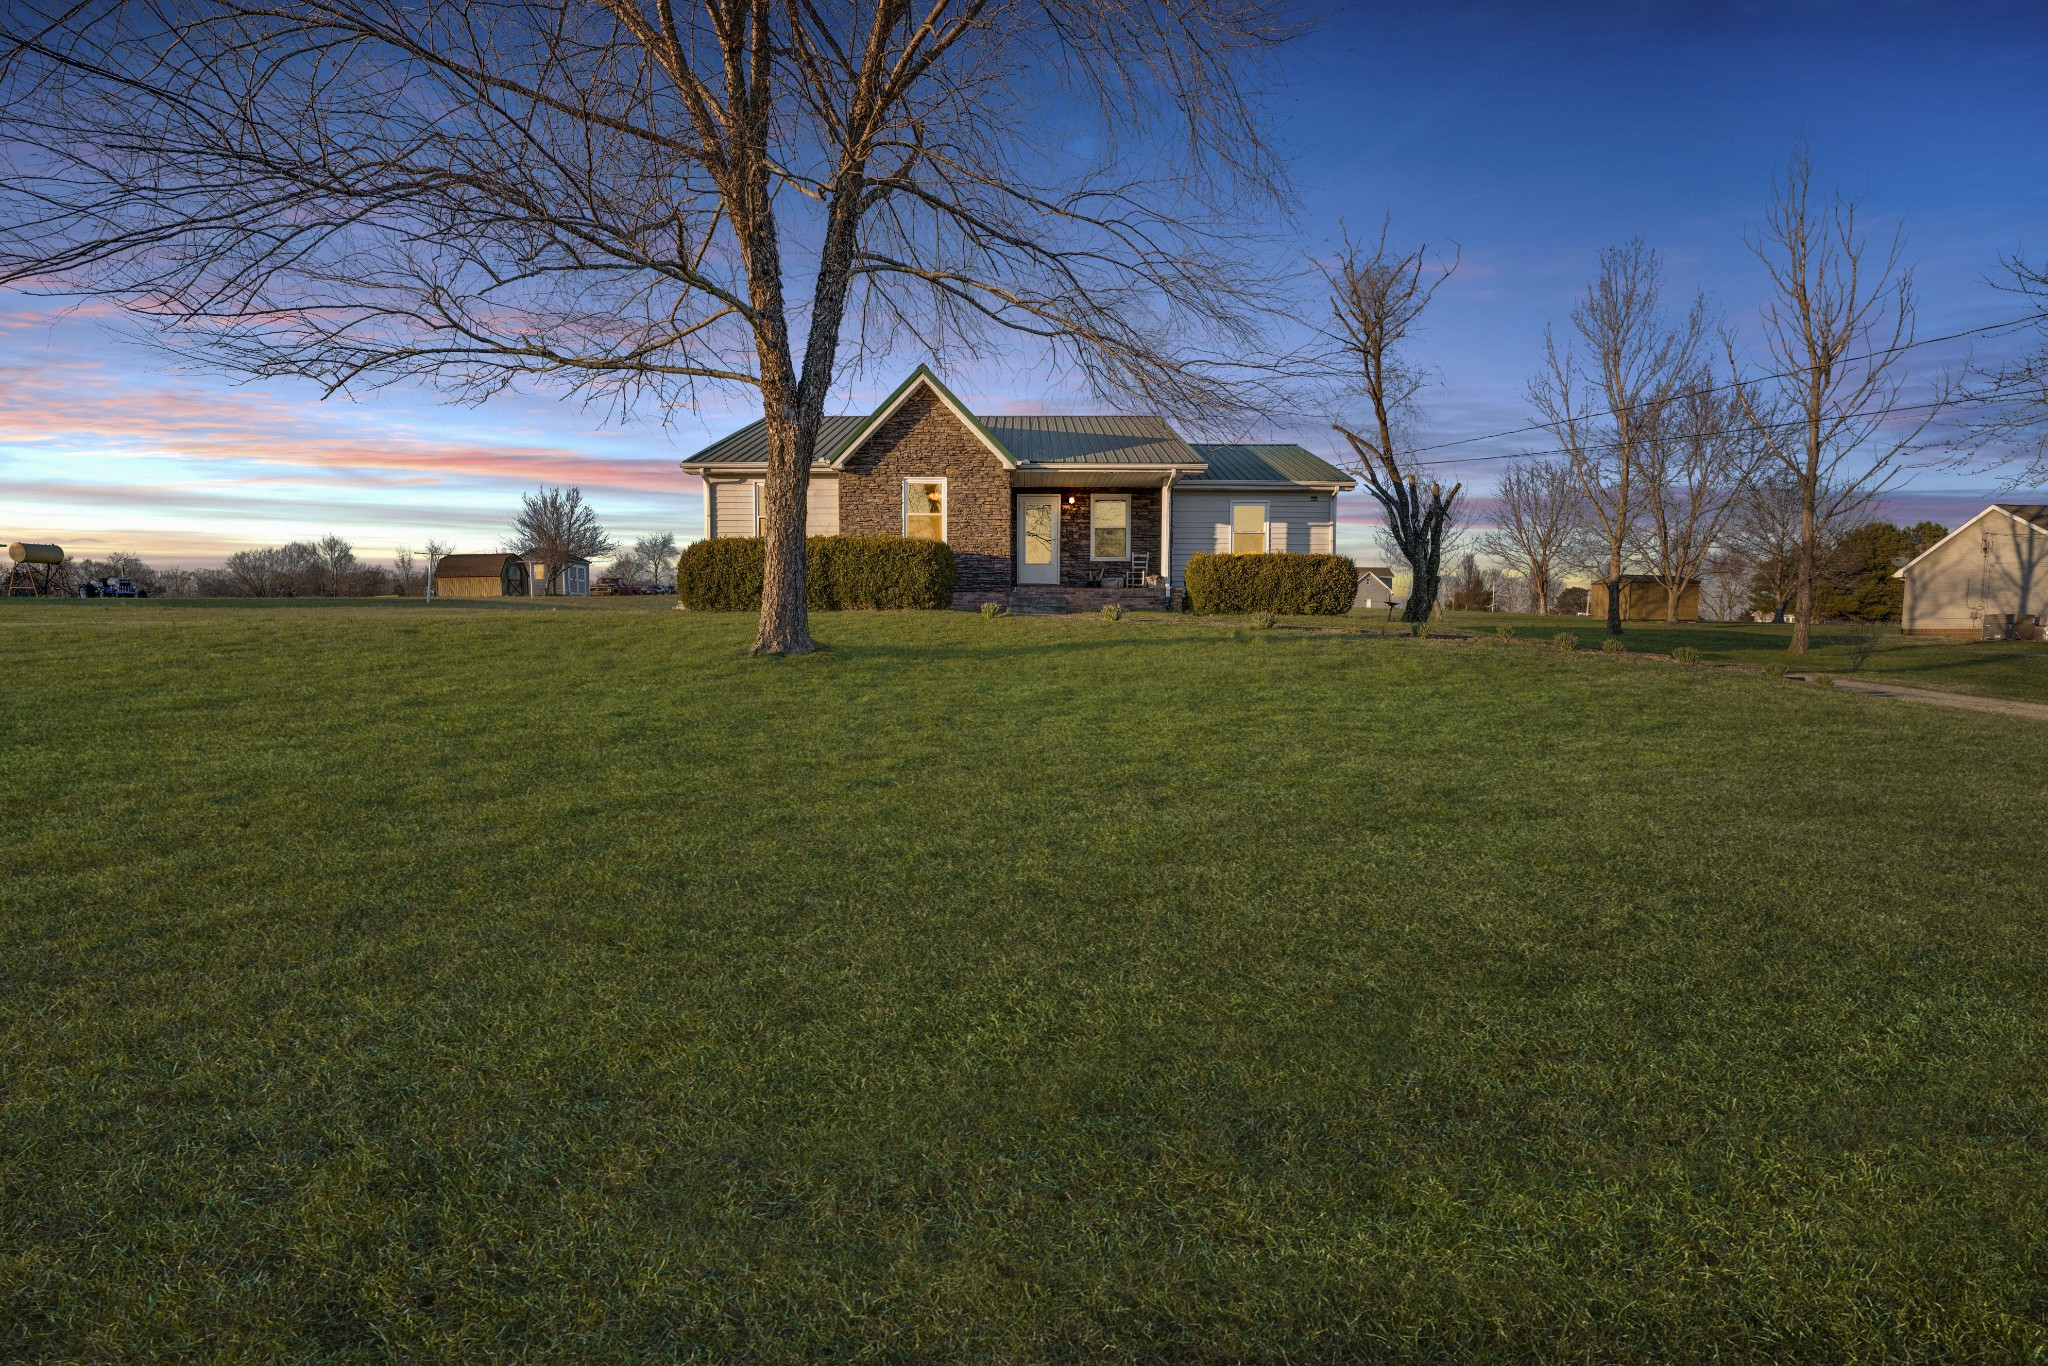 2473 Chester Harris Rd, Woodlawn, TN 37191 - Woodlawn, TN real estate listing